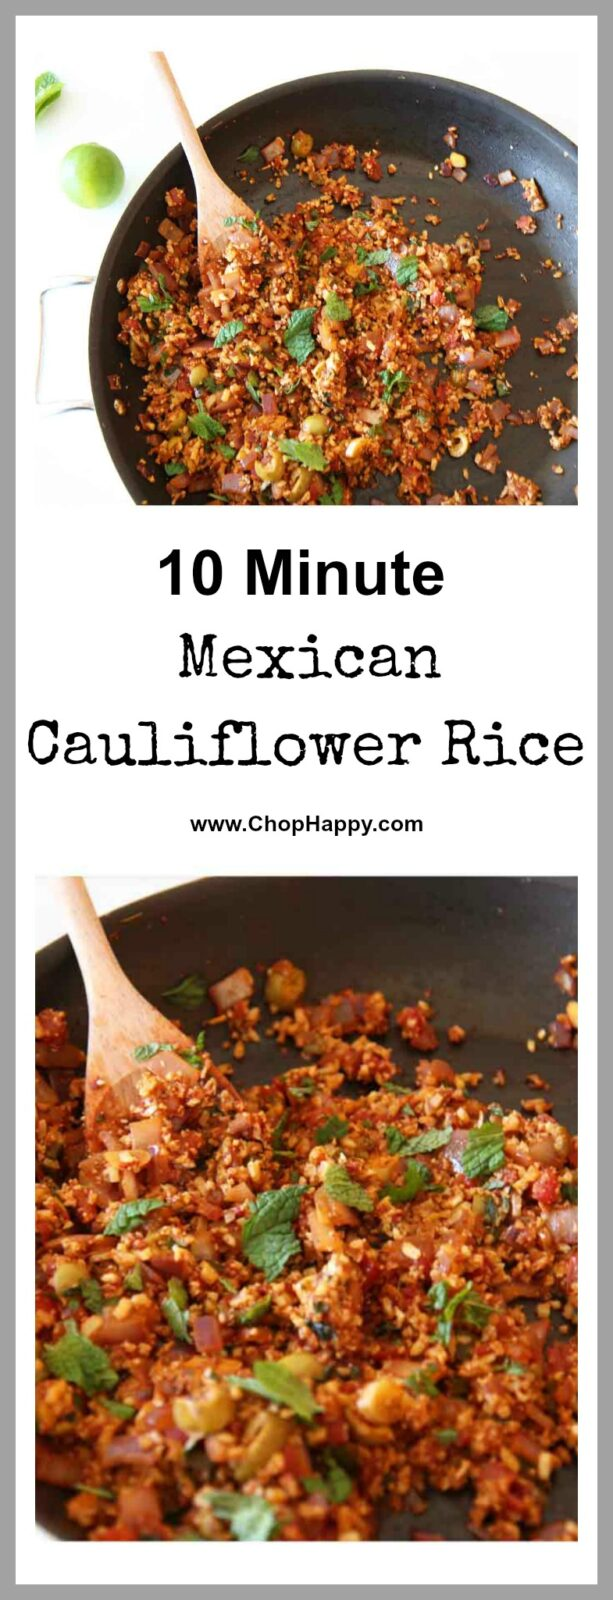 Mexican Cauliflower Recipe- in 10 minutes you have a sweet and spicy comfort food smile. Cauliflower rice cuts the cook time in 1/2 and is such a great weeknight meal on the go. Just a few ingredients like cauliflower rice, canned tomato, jalapeno and more yummy stuff. www.ChopHappy.com